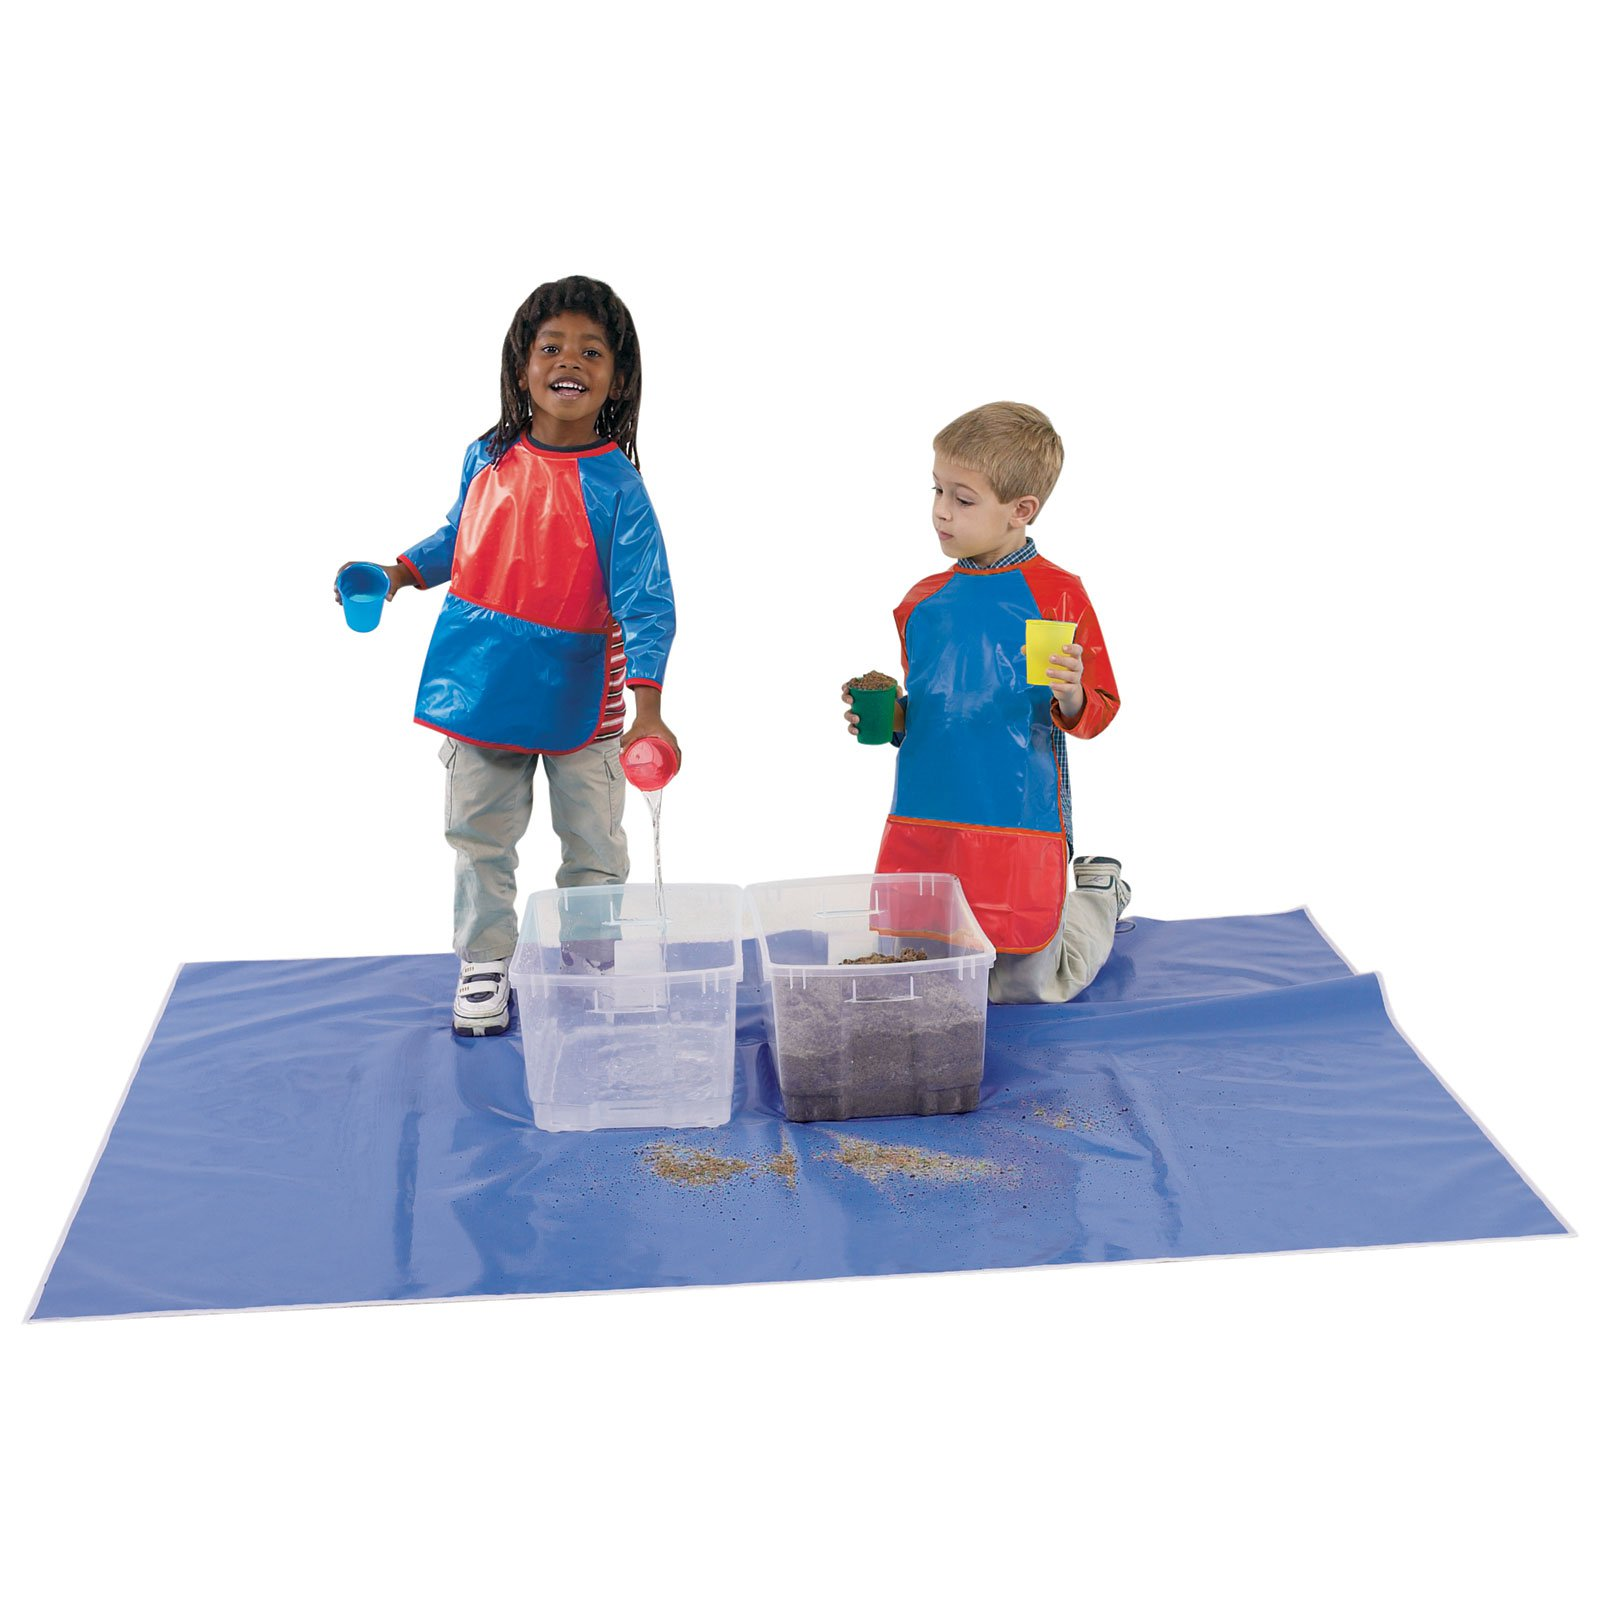 Children's Factory Mess 'N Play Splash Mats